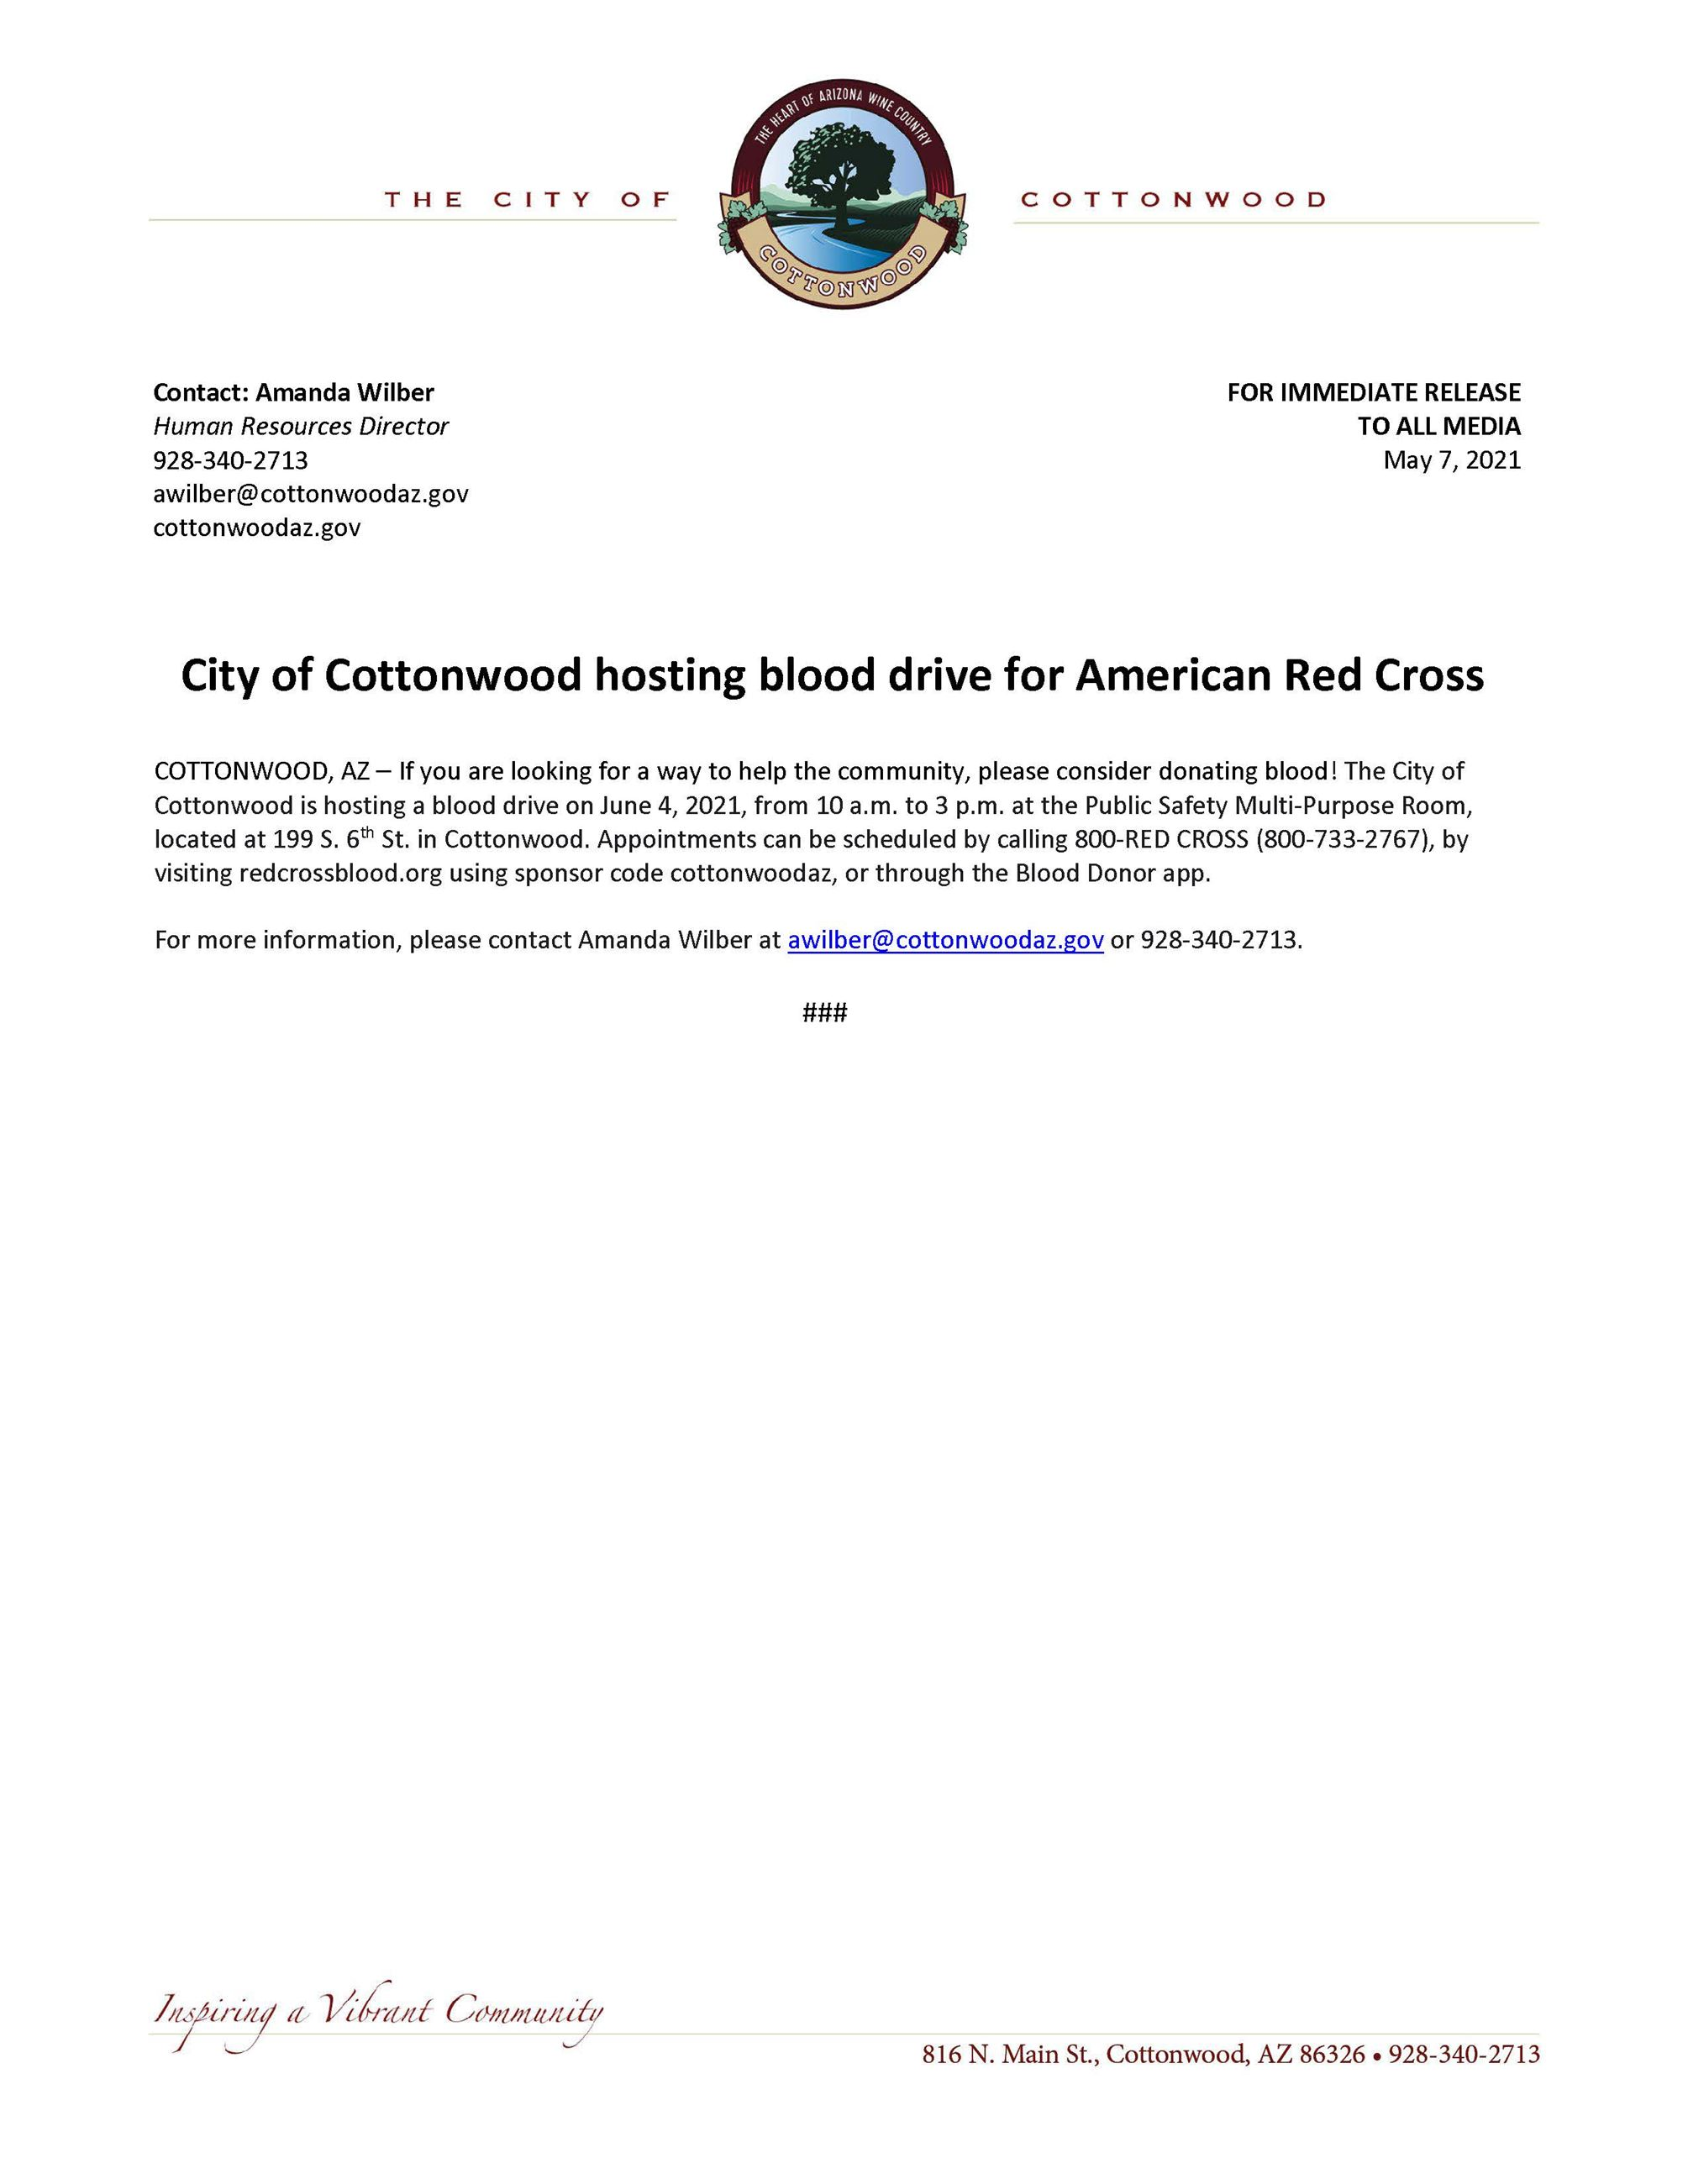 PRESS RELEASE - City of Cottonwood Hosting Blood Drive for American Red Cross